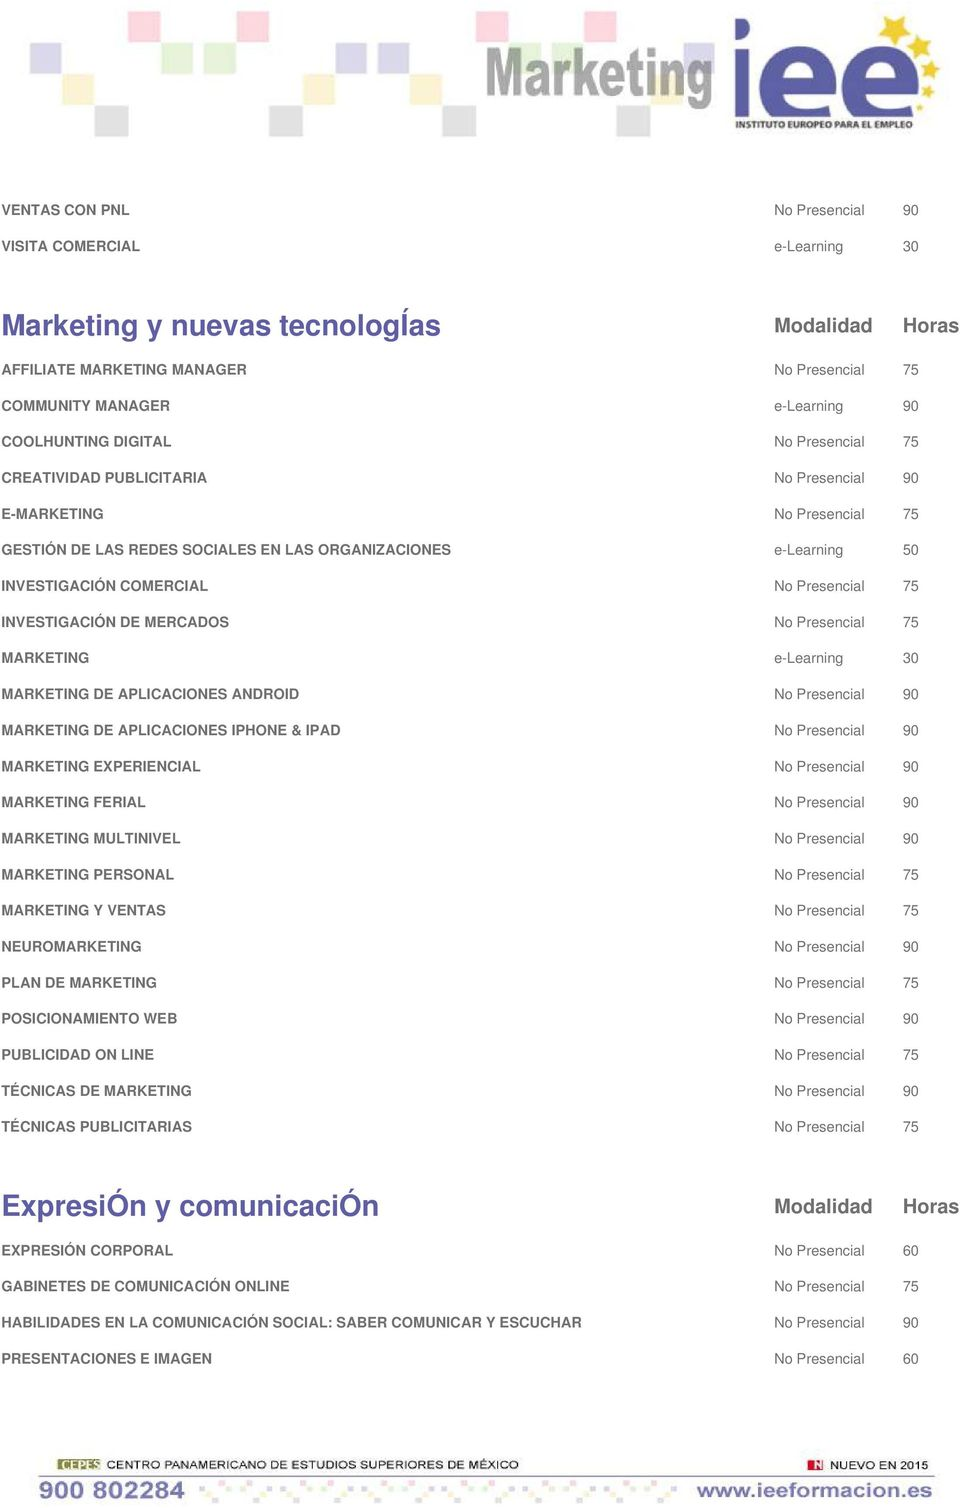 75 INVESTIGACIÓN DE MERCADOS No Presencial 75 MARKETING e-learning 30 MARKETING DE APLICACIONES ANDROID No Presencial 90 MARKETING DE APLICACIONES IPHONE & IPAD No Presencial 90 MARKETING